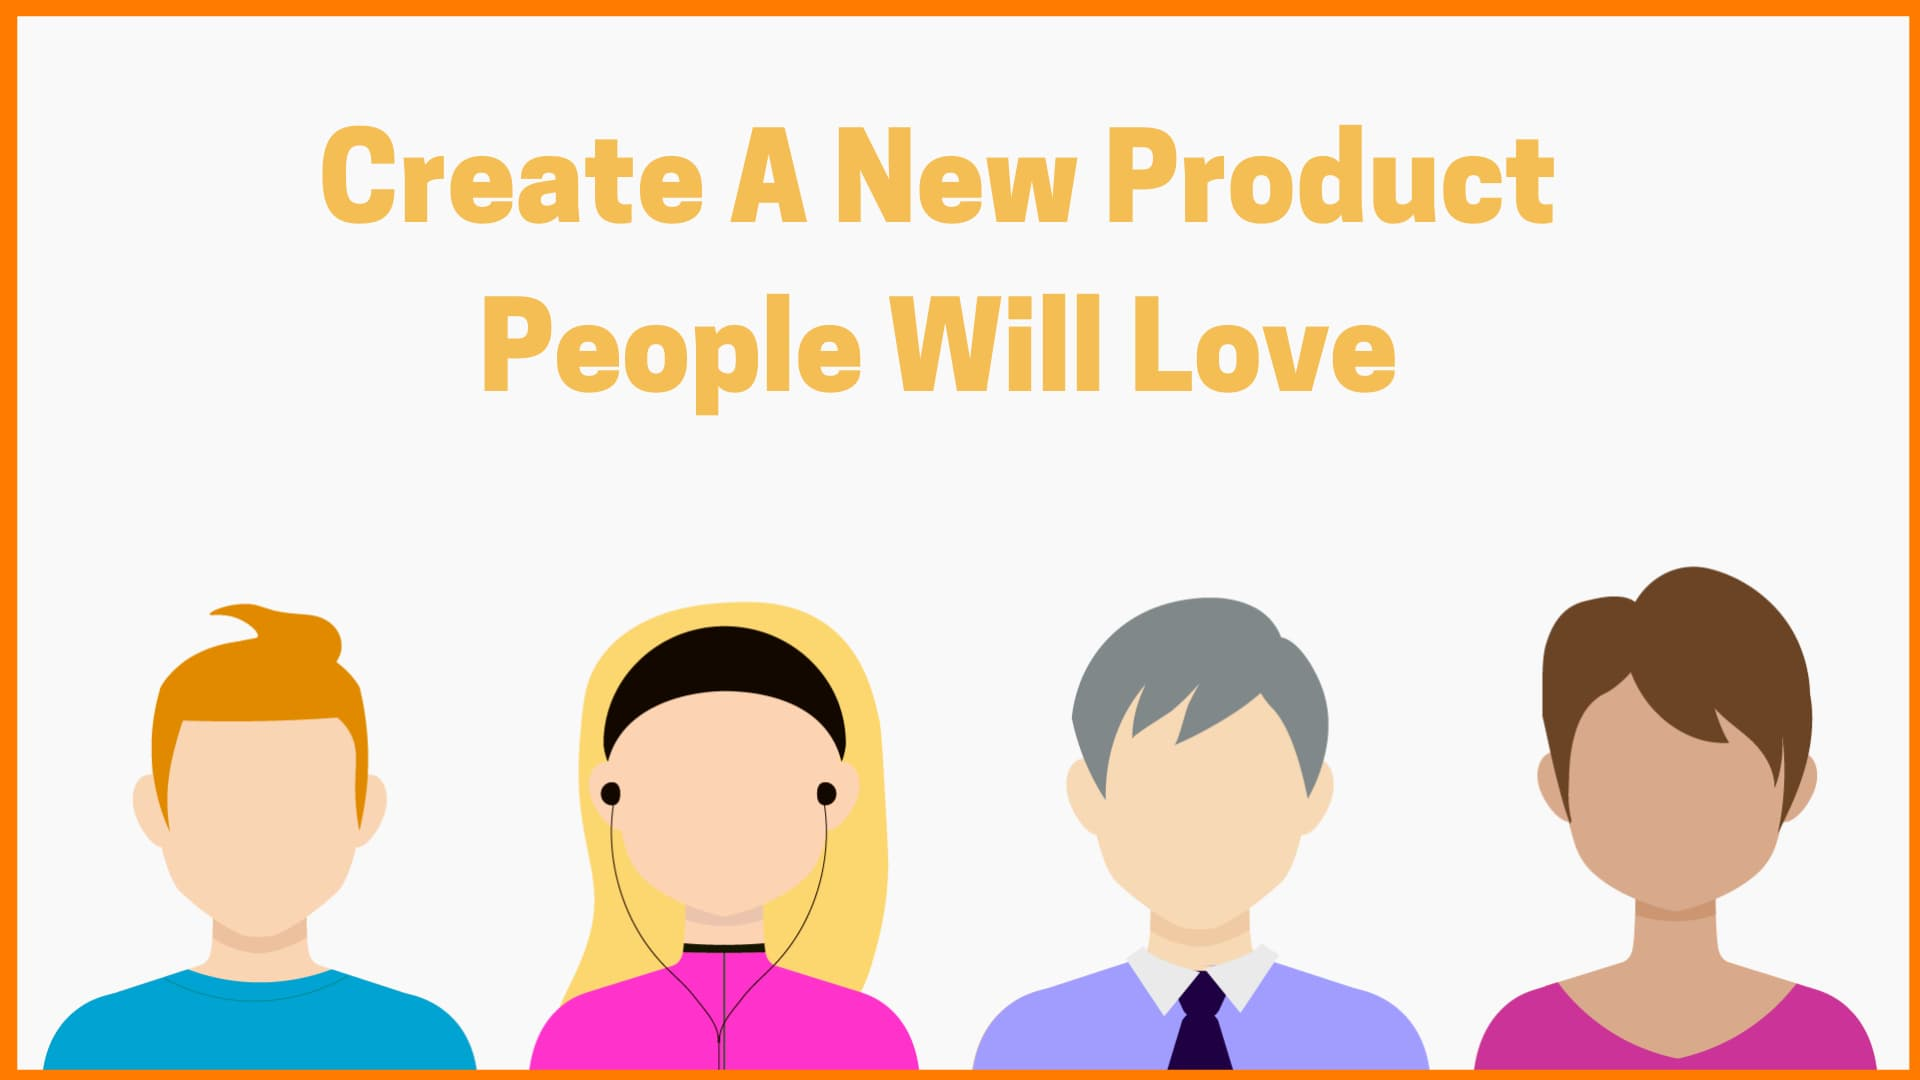 How To Create A New Product People Will Love